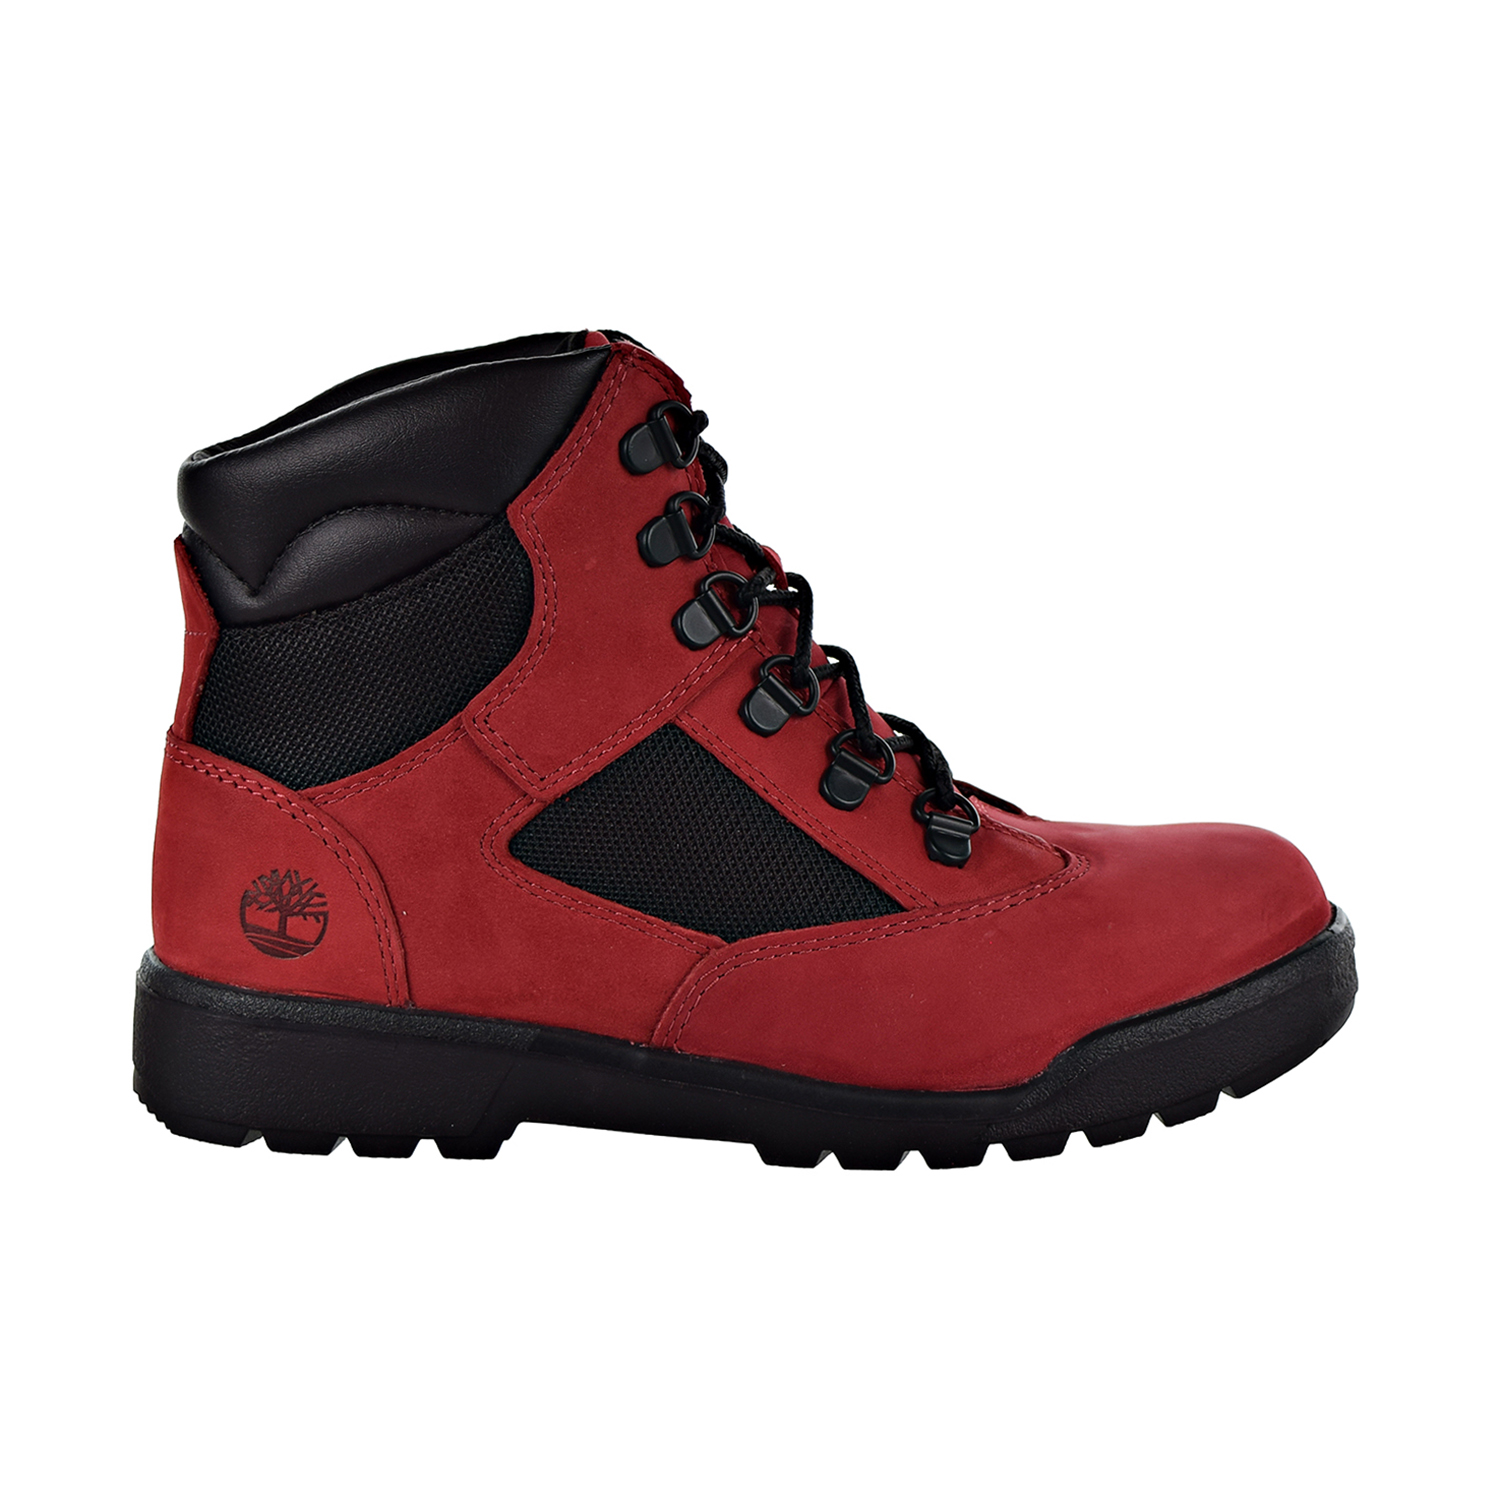 Field Boot Big Kids' Shoes Red-Black